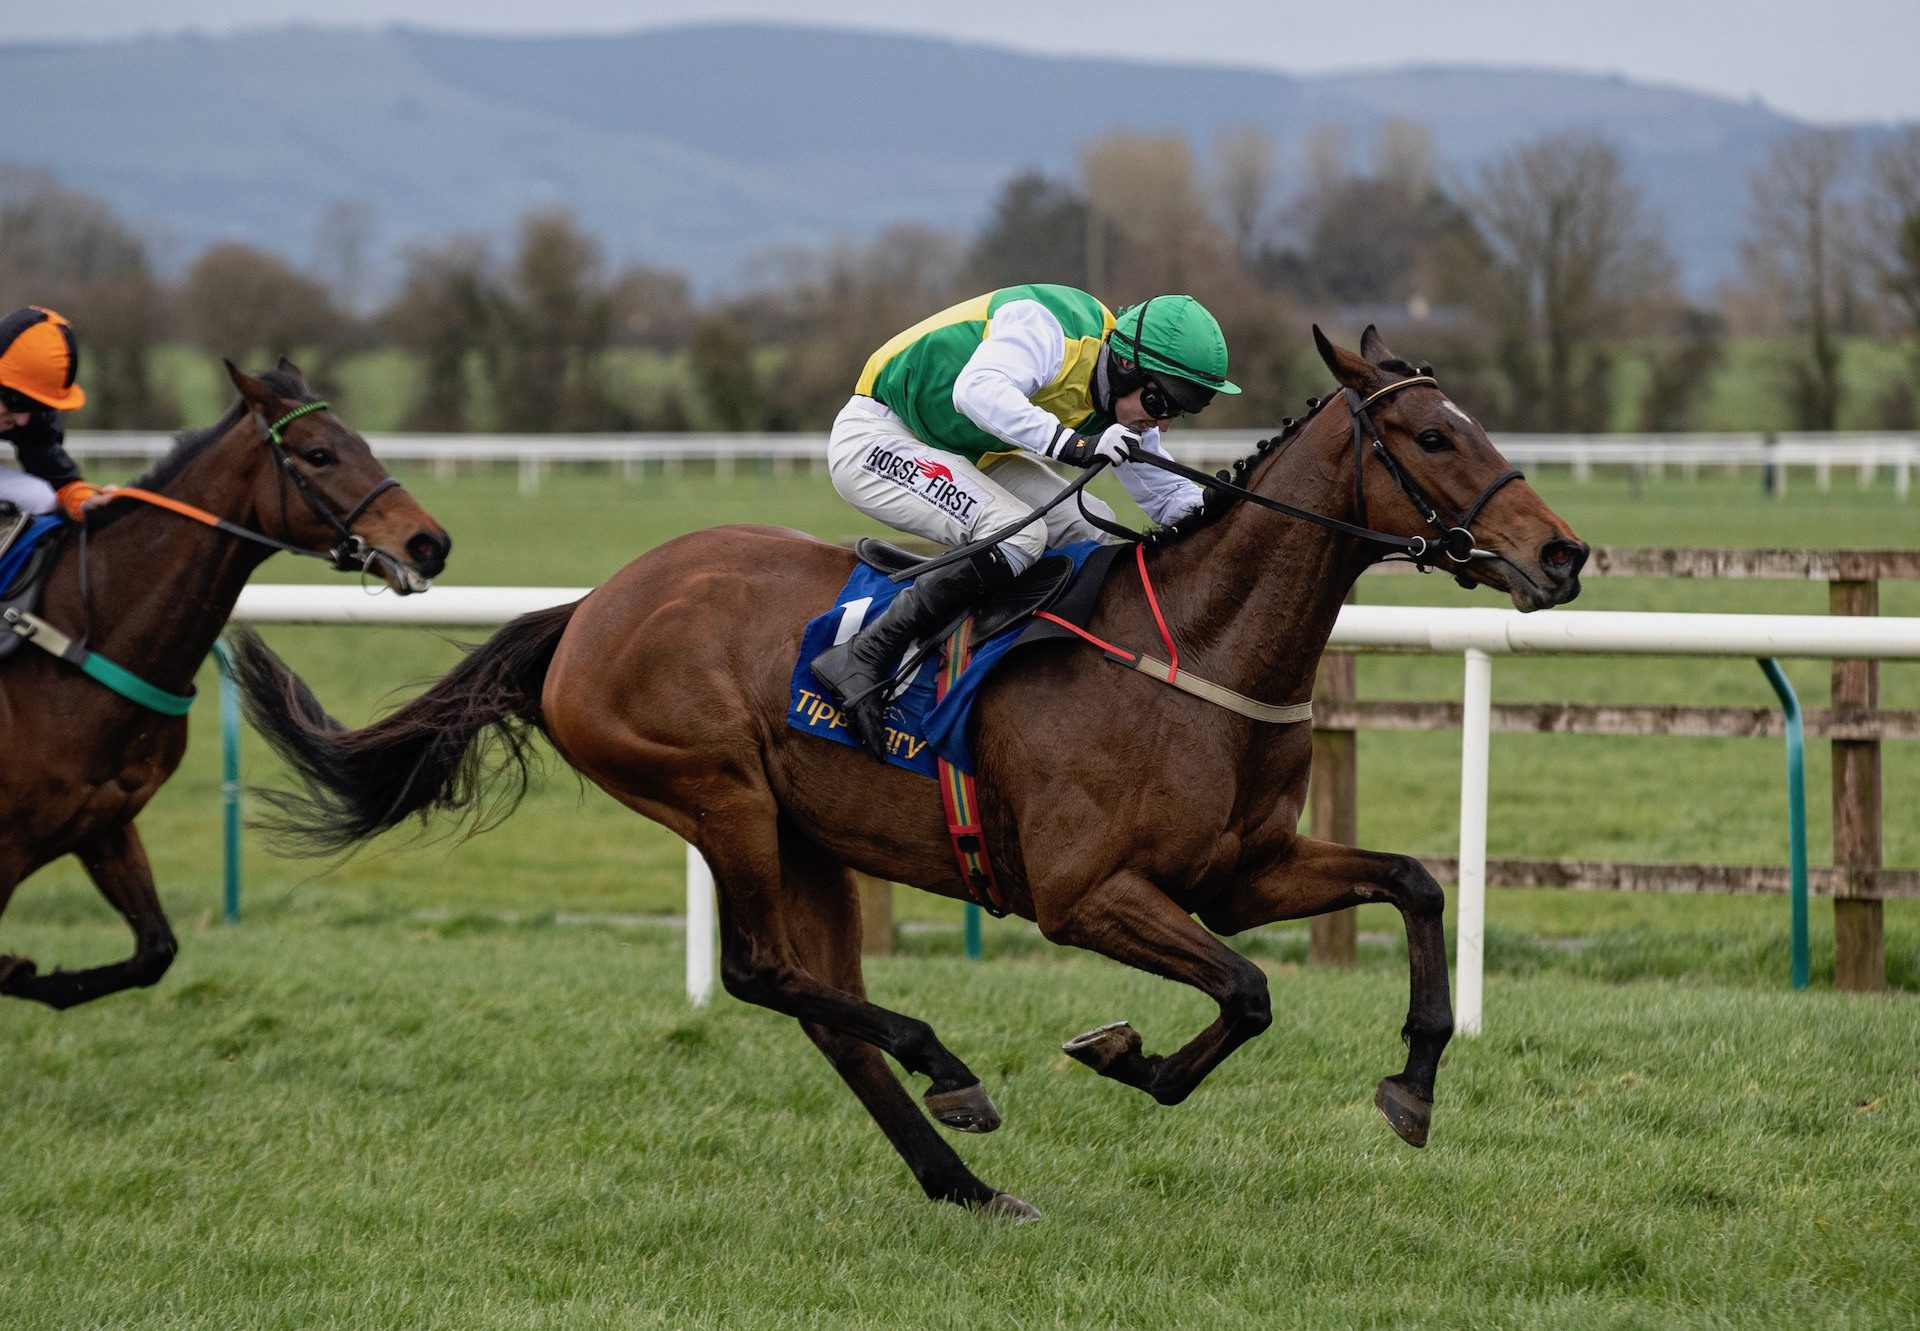 Iron Bridge (Milan) Wins At Tipperary